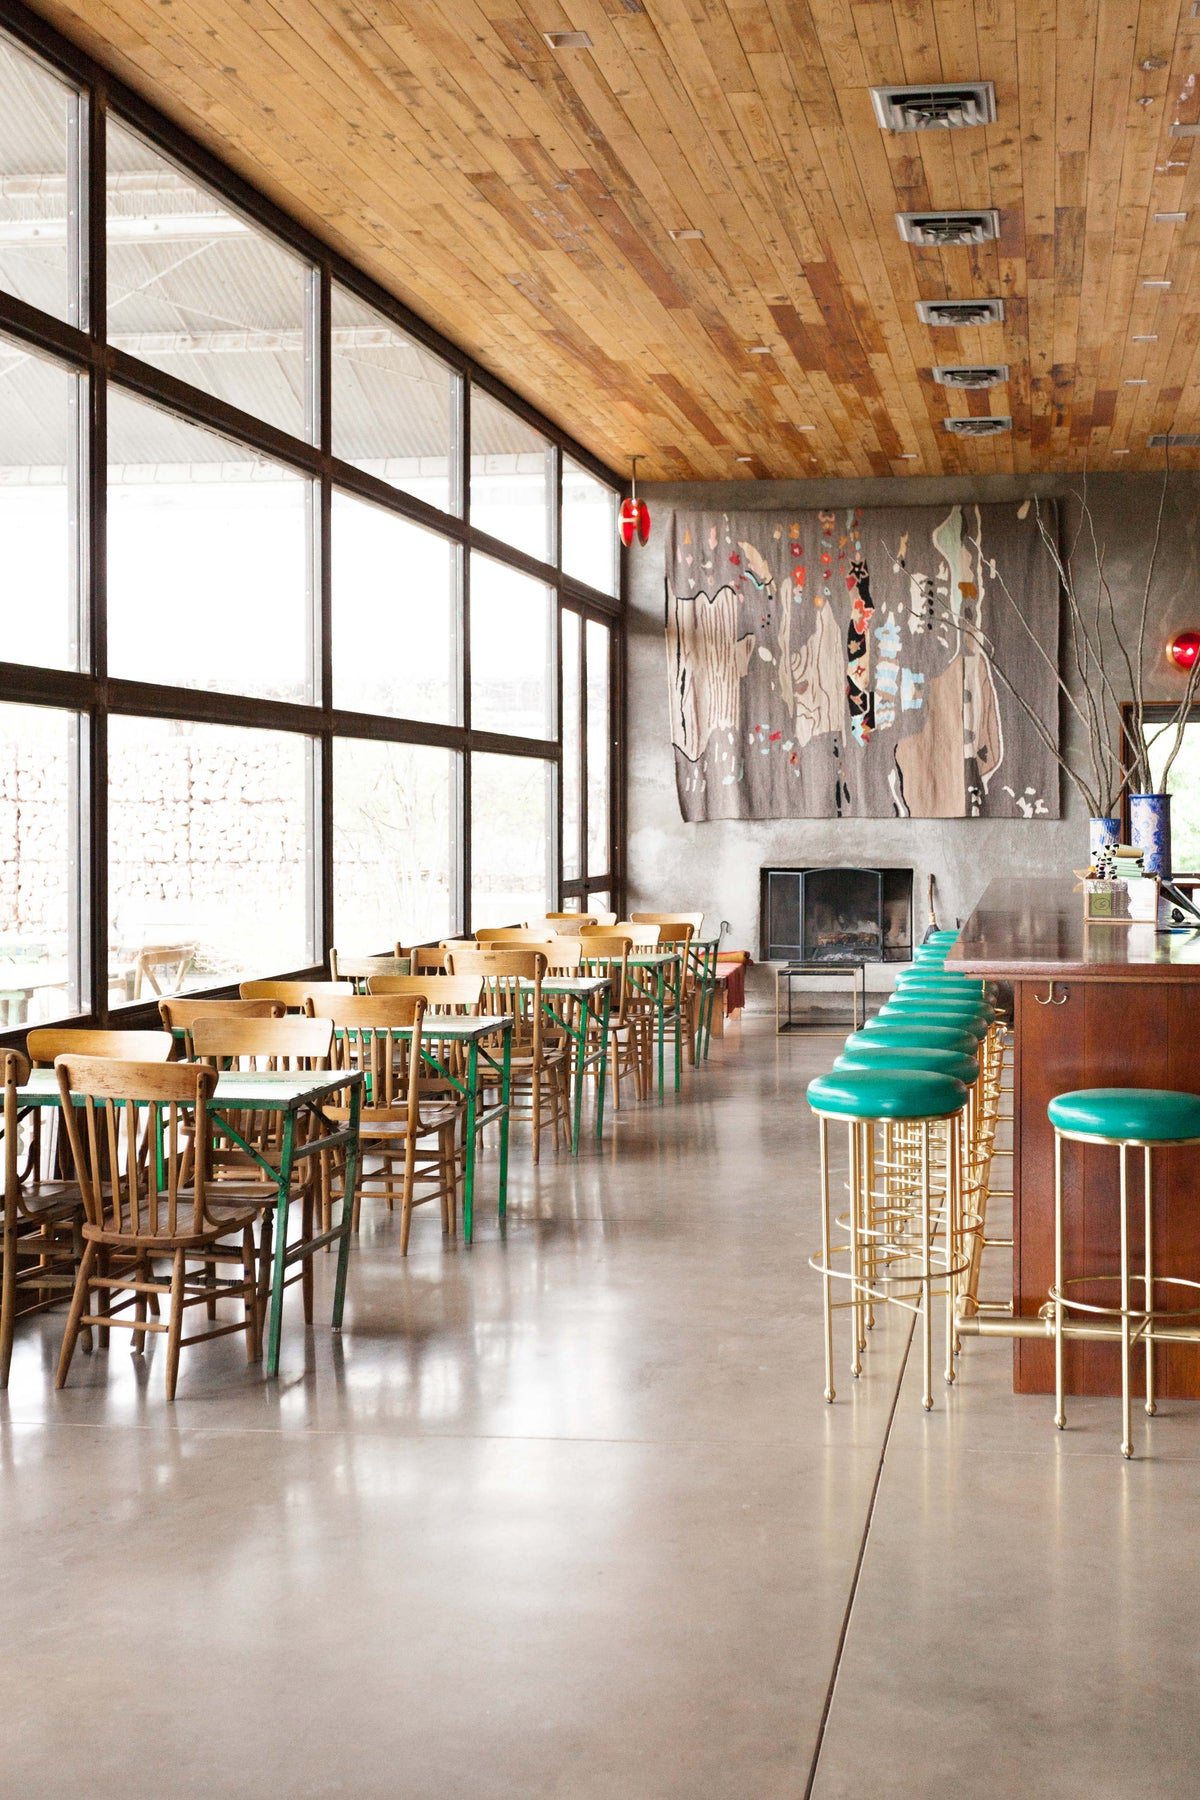 Thunderbird Hotel, Marfa - hotel restaurant with wood plank ceilings, rustic chairs and tables, and bar.